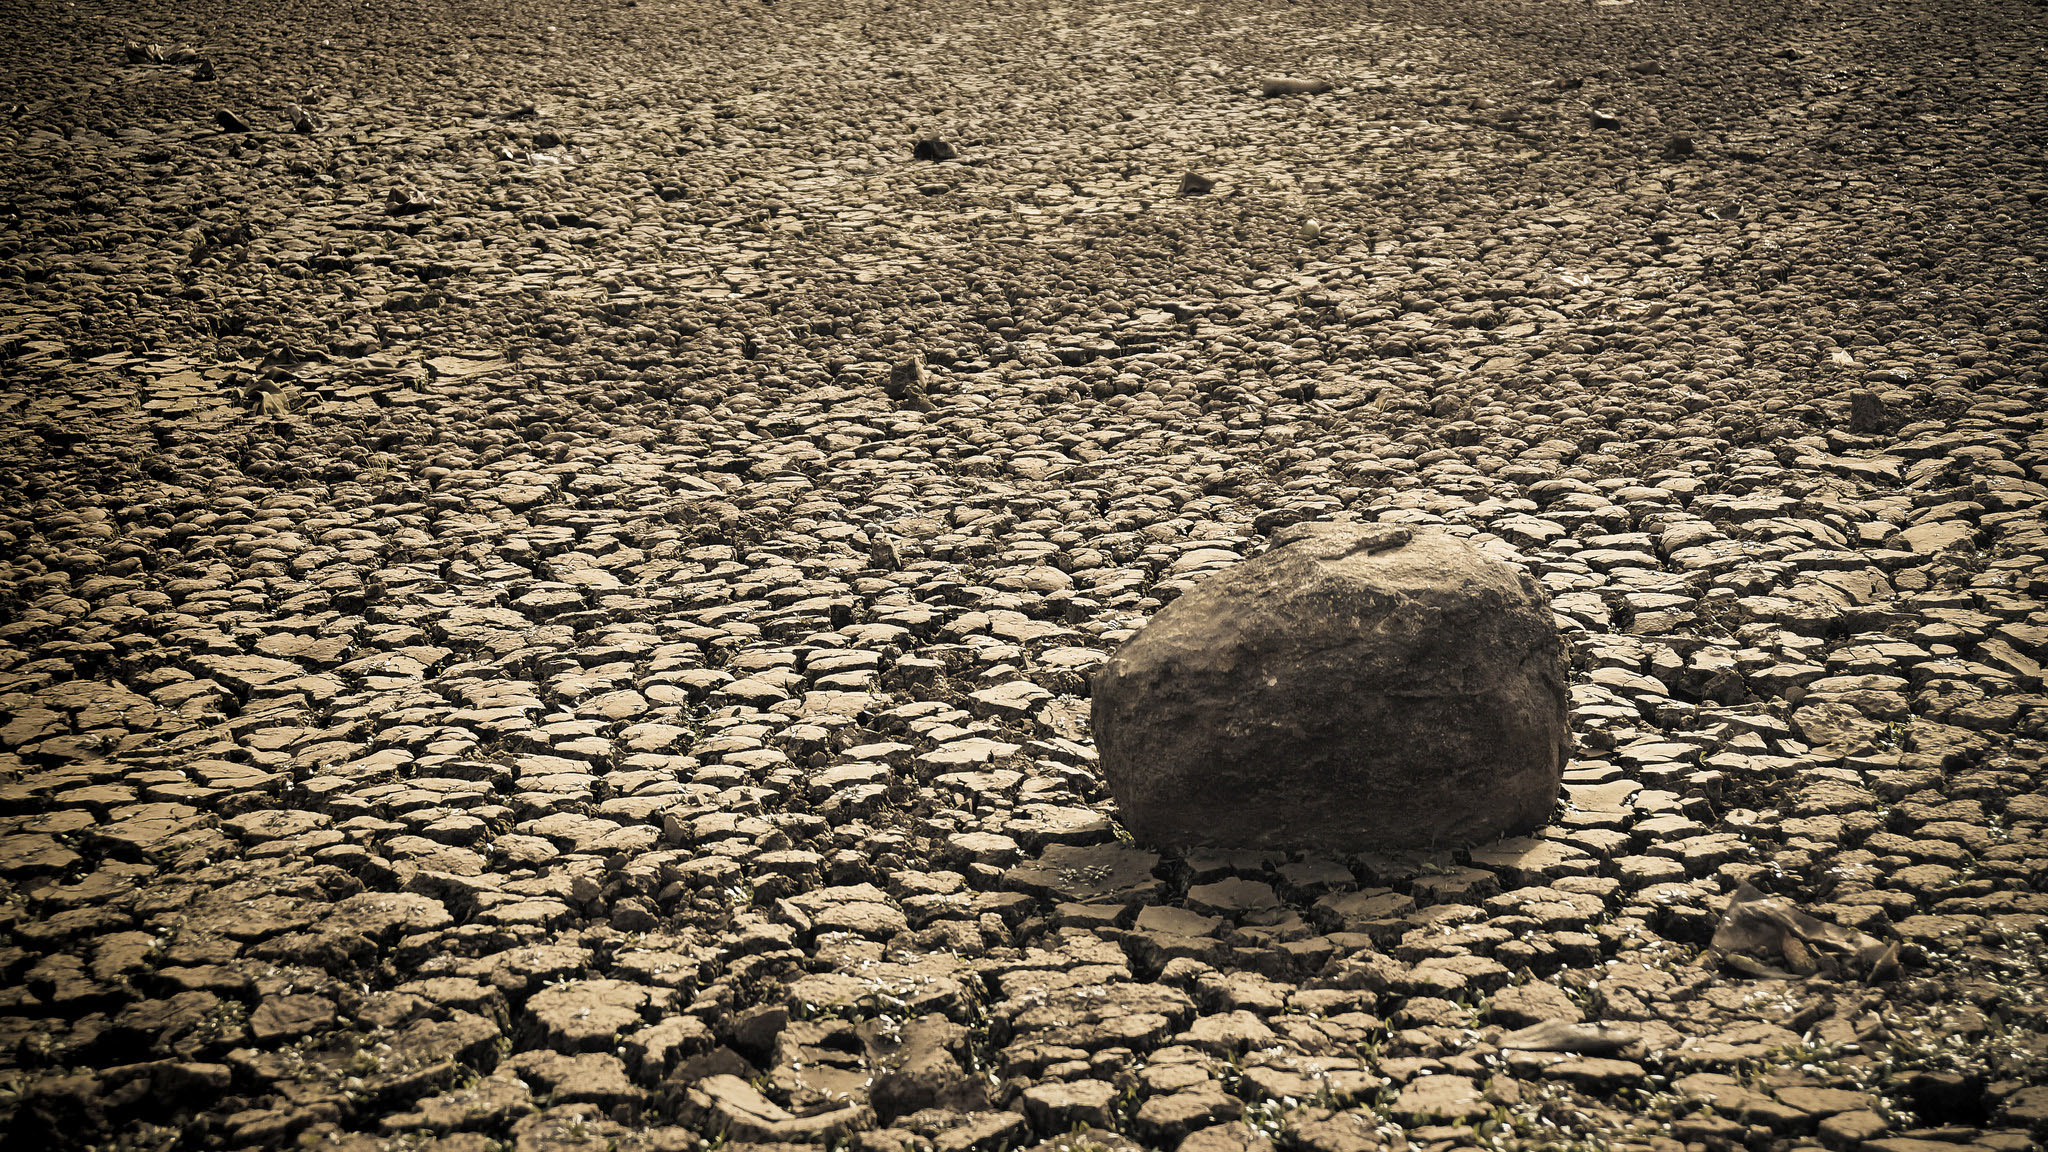 Victorian Government welcomes announced drought loans but expresses concern over eligibility